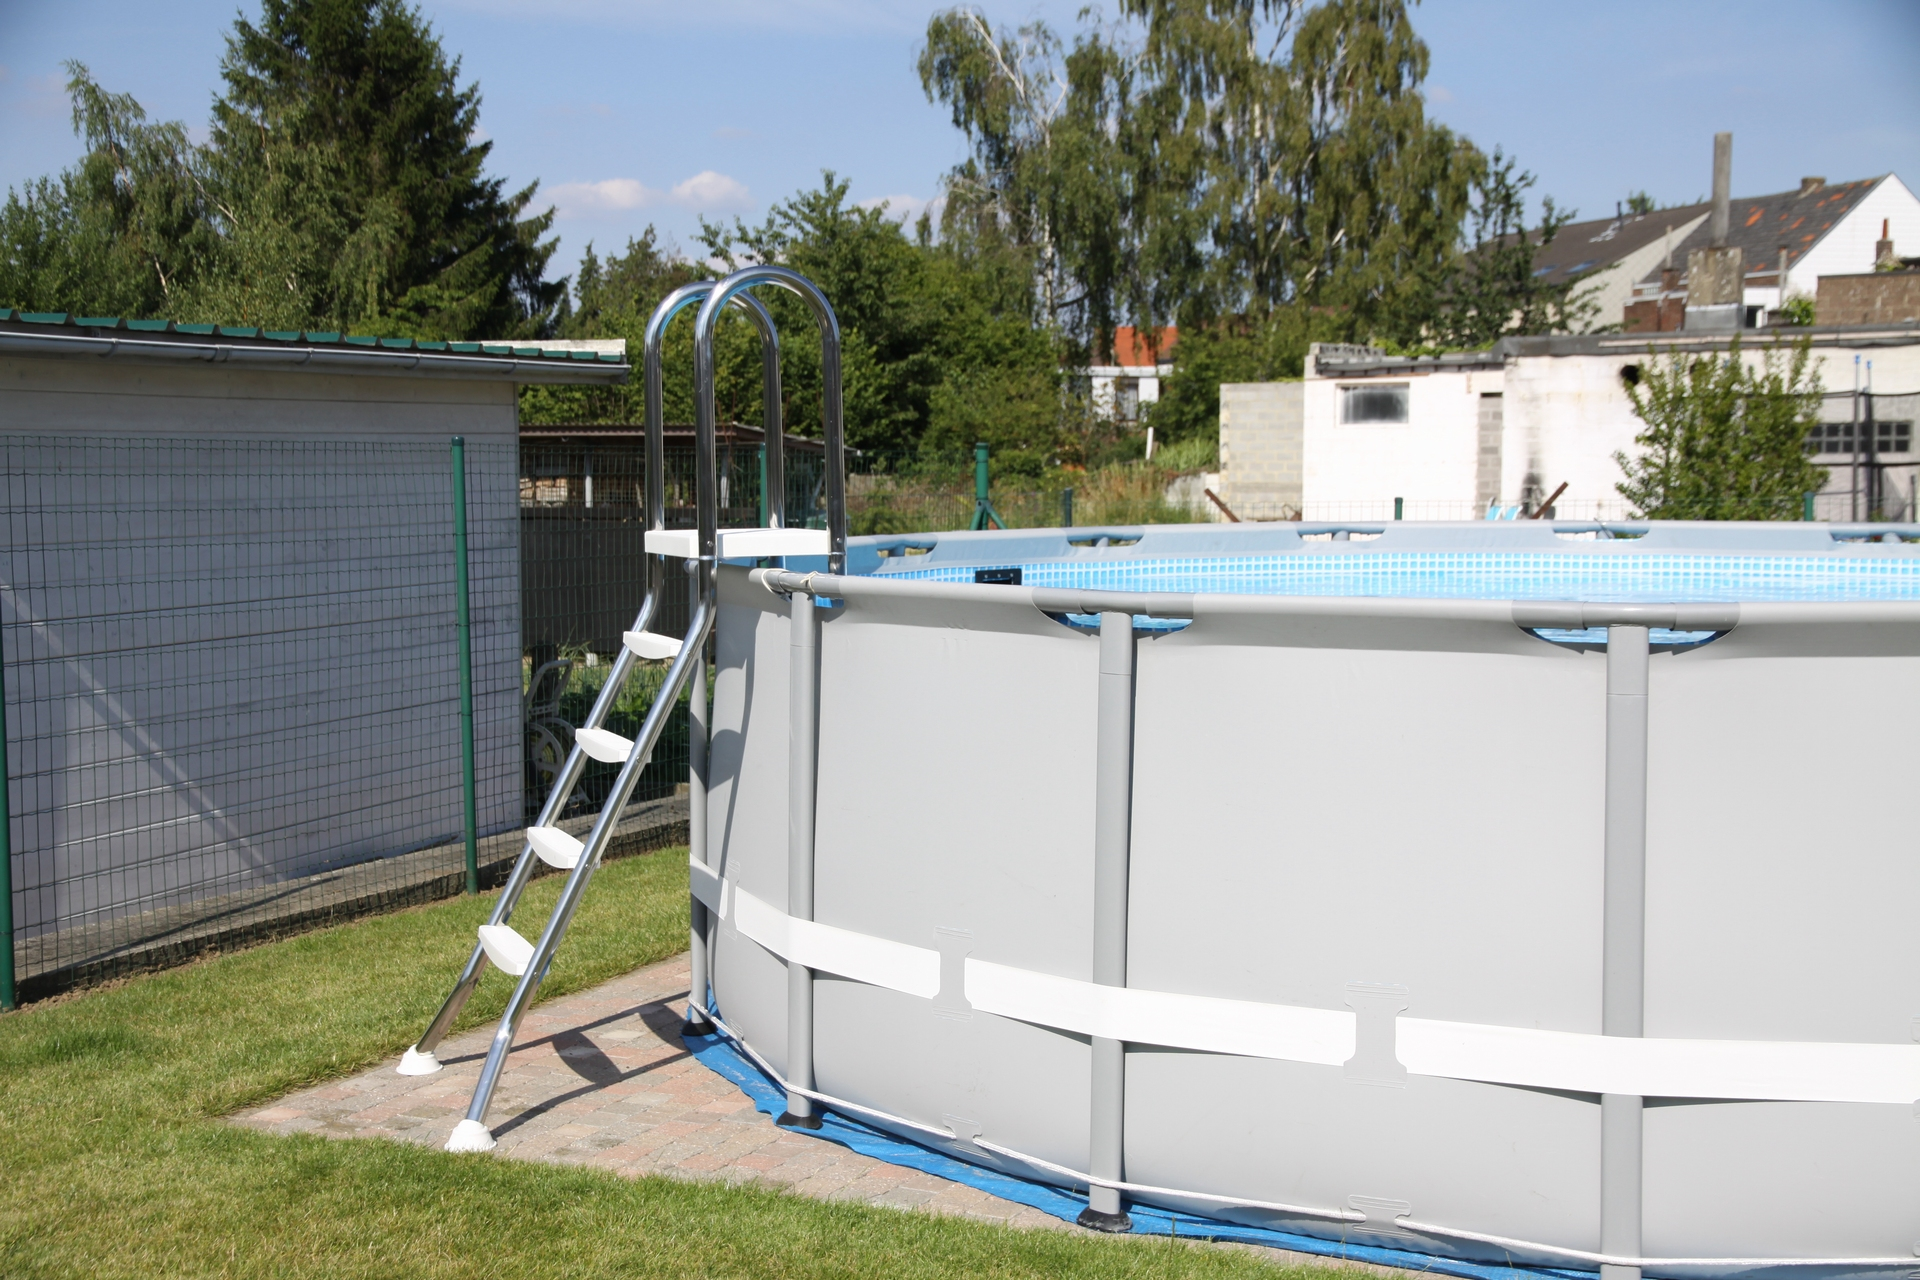 Chelle de piscine en inox astral pool for Piscine hors sol avec toboggan